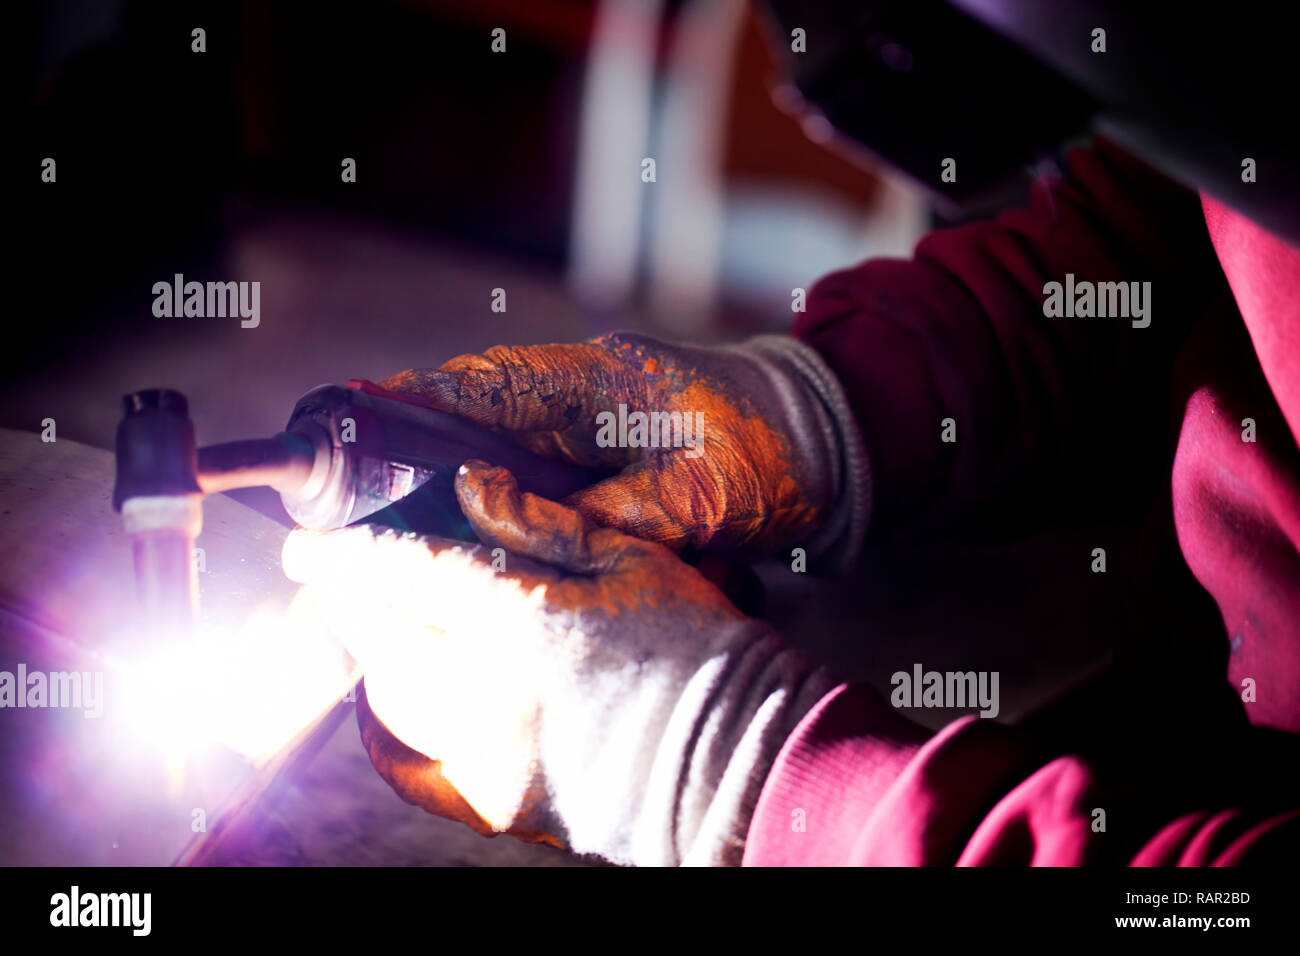 Arc Welding in Construction Area Industrial Concept Stock Photo